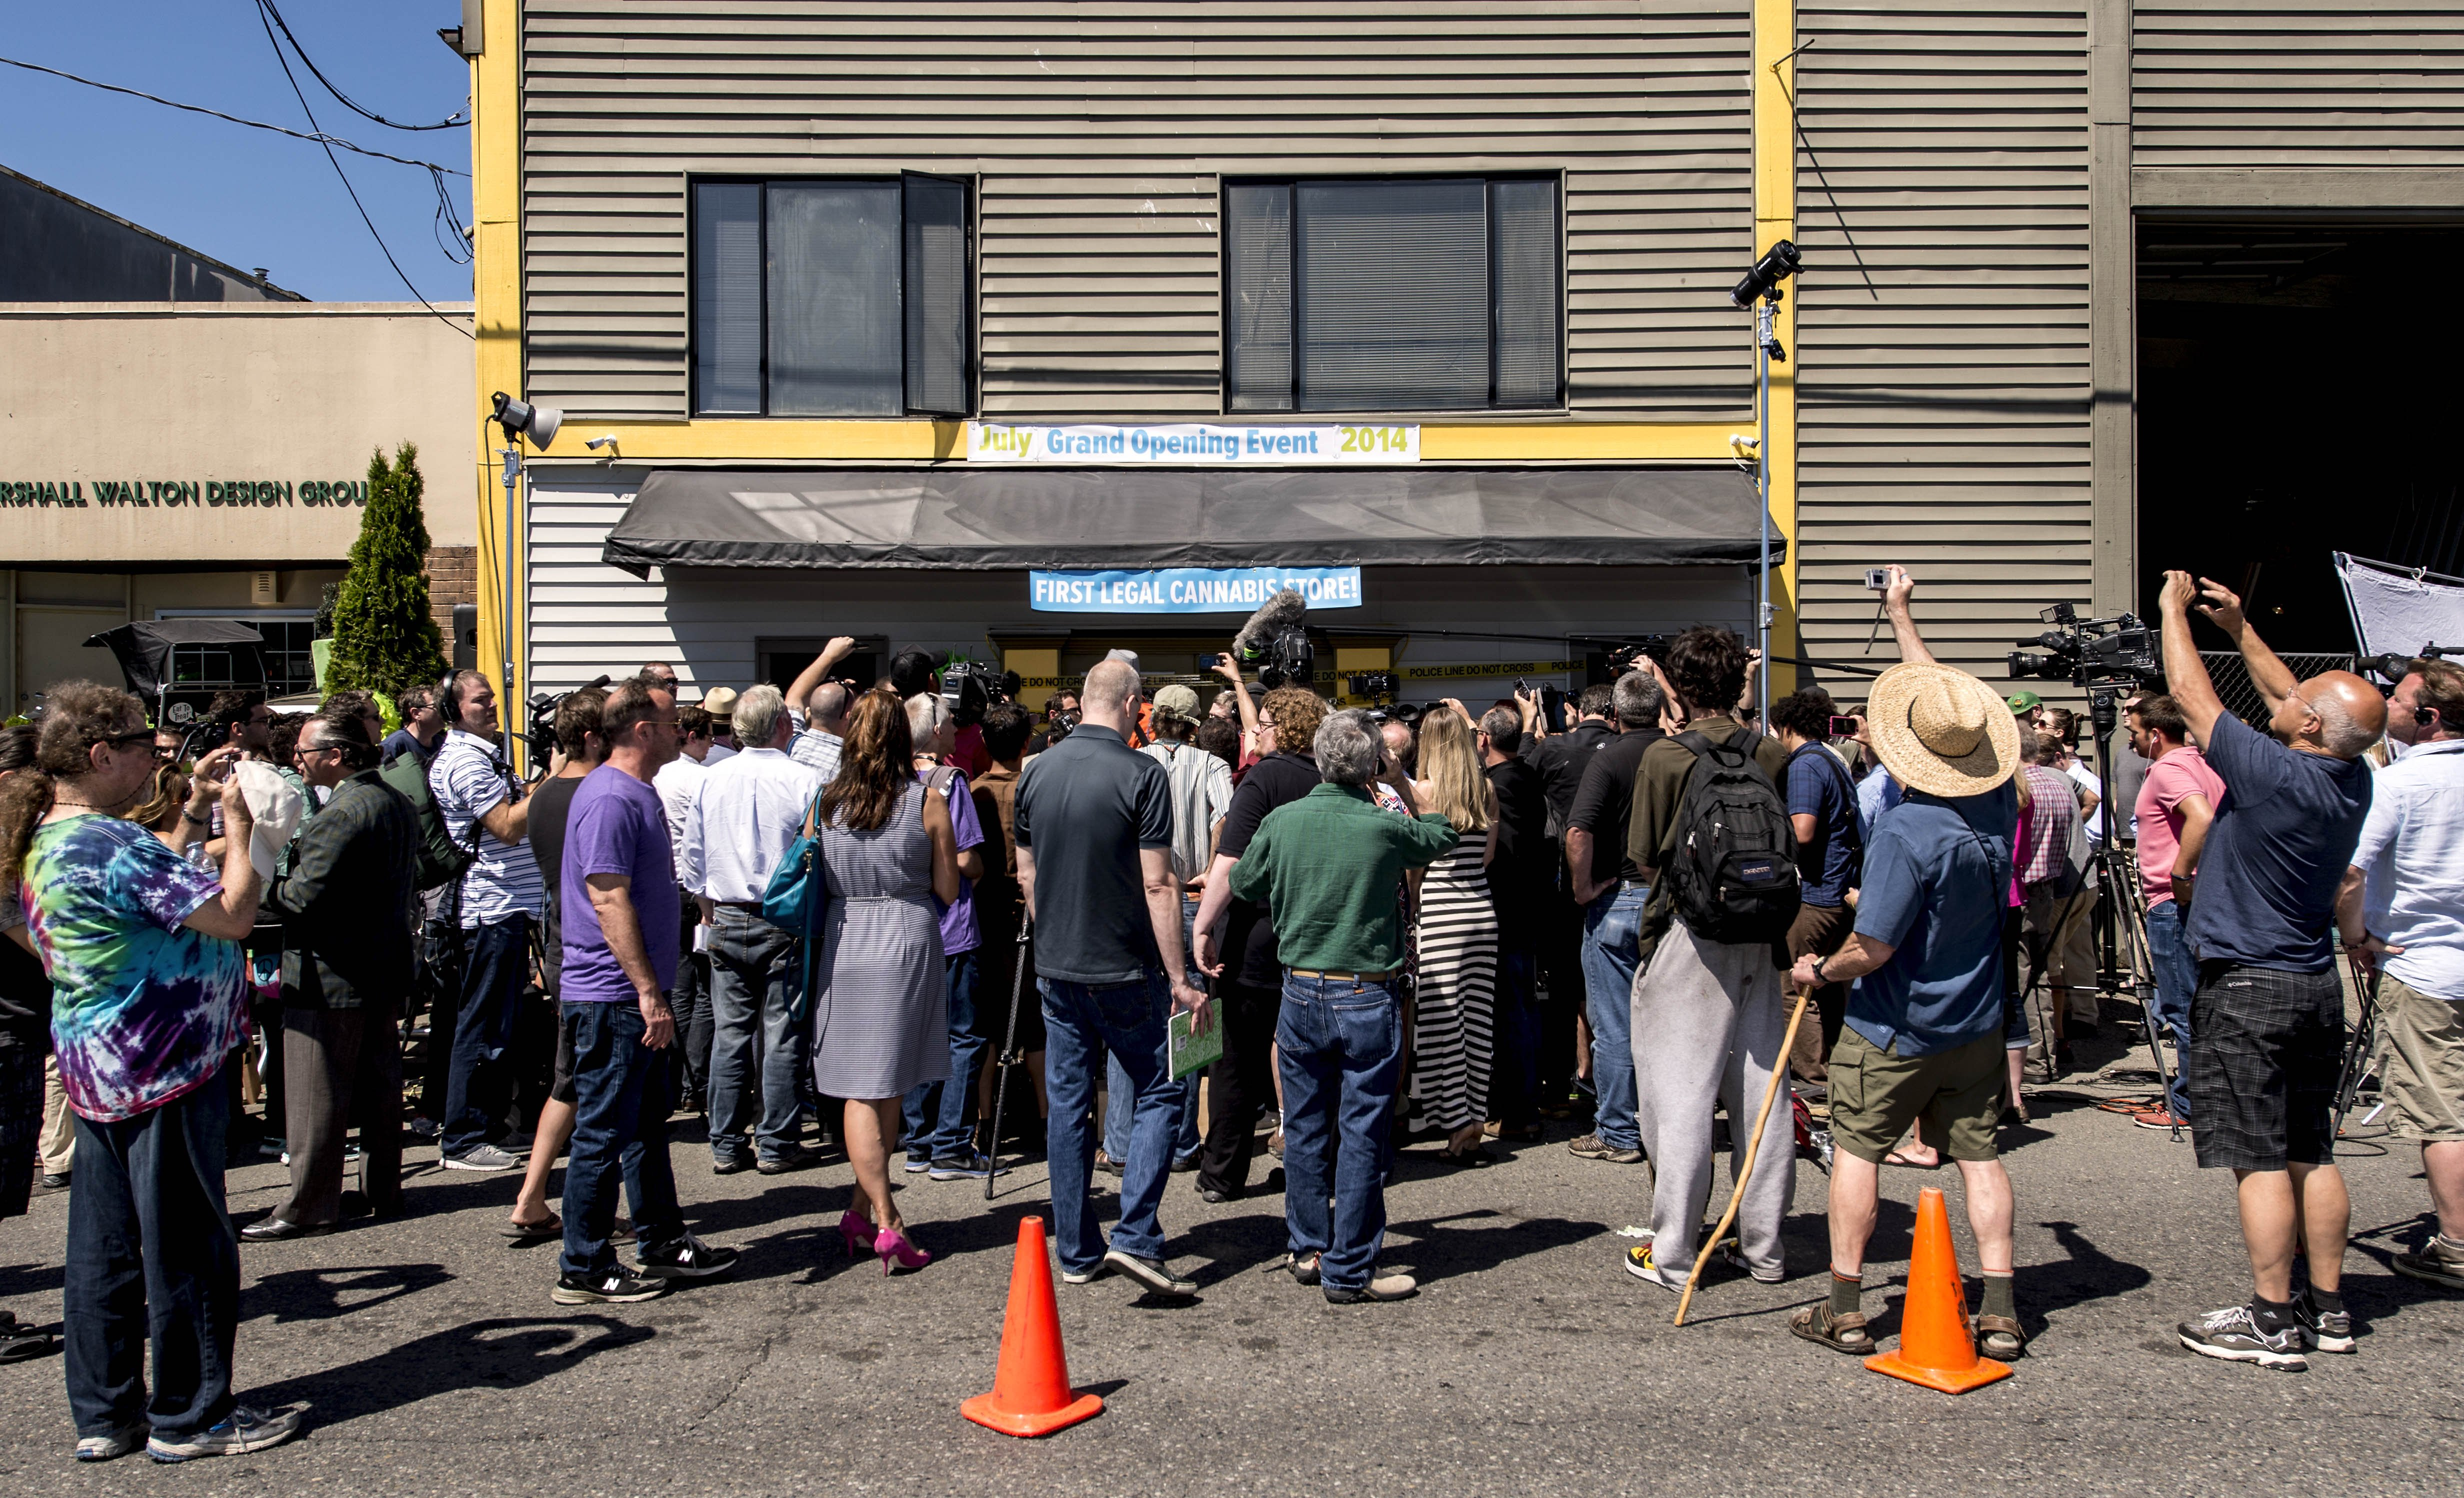 The press gathers at Cannabis City, the first dispensary with a state license to sell recreational marijuana to the public in Seattle, July 8, 2014.